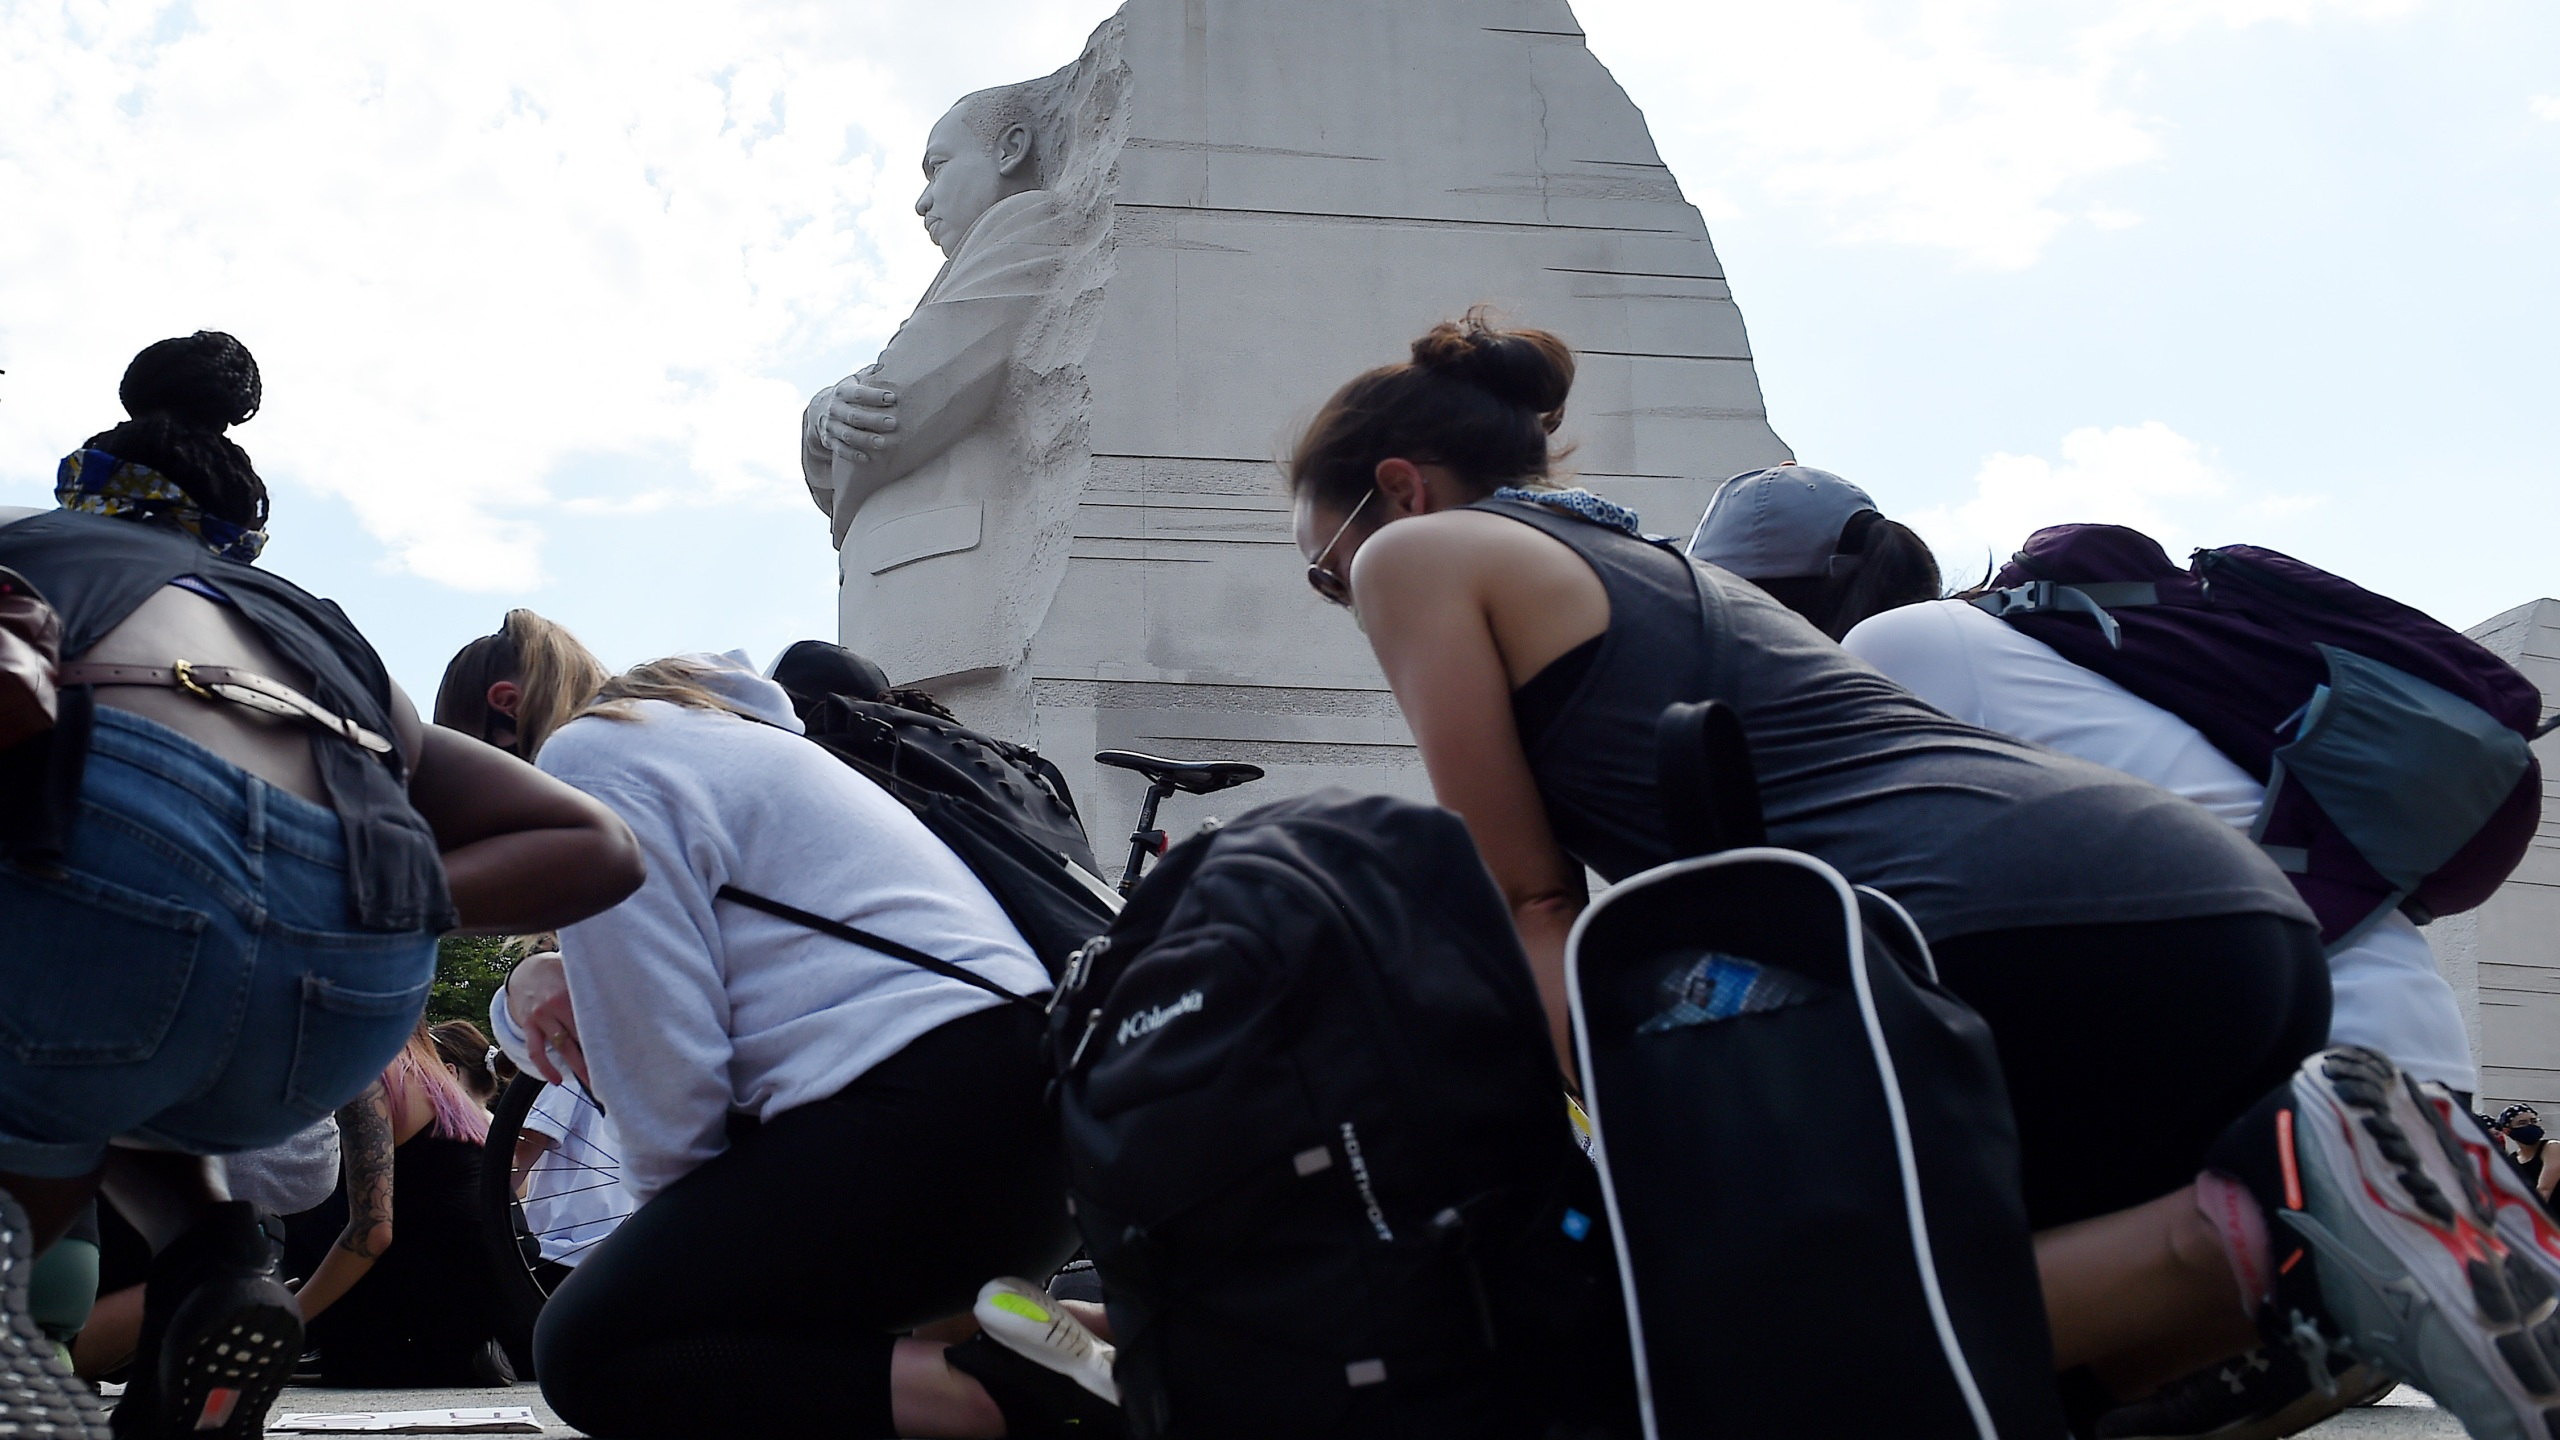 Demonstrators kneel down at The Martin Luther King Jr. Memorial in Washington, D.C., as they protest the death of George Floyd on June 4, 2020. (OLIVIER DOULIERY/AFP via Getty Images)